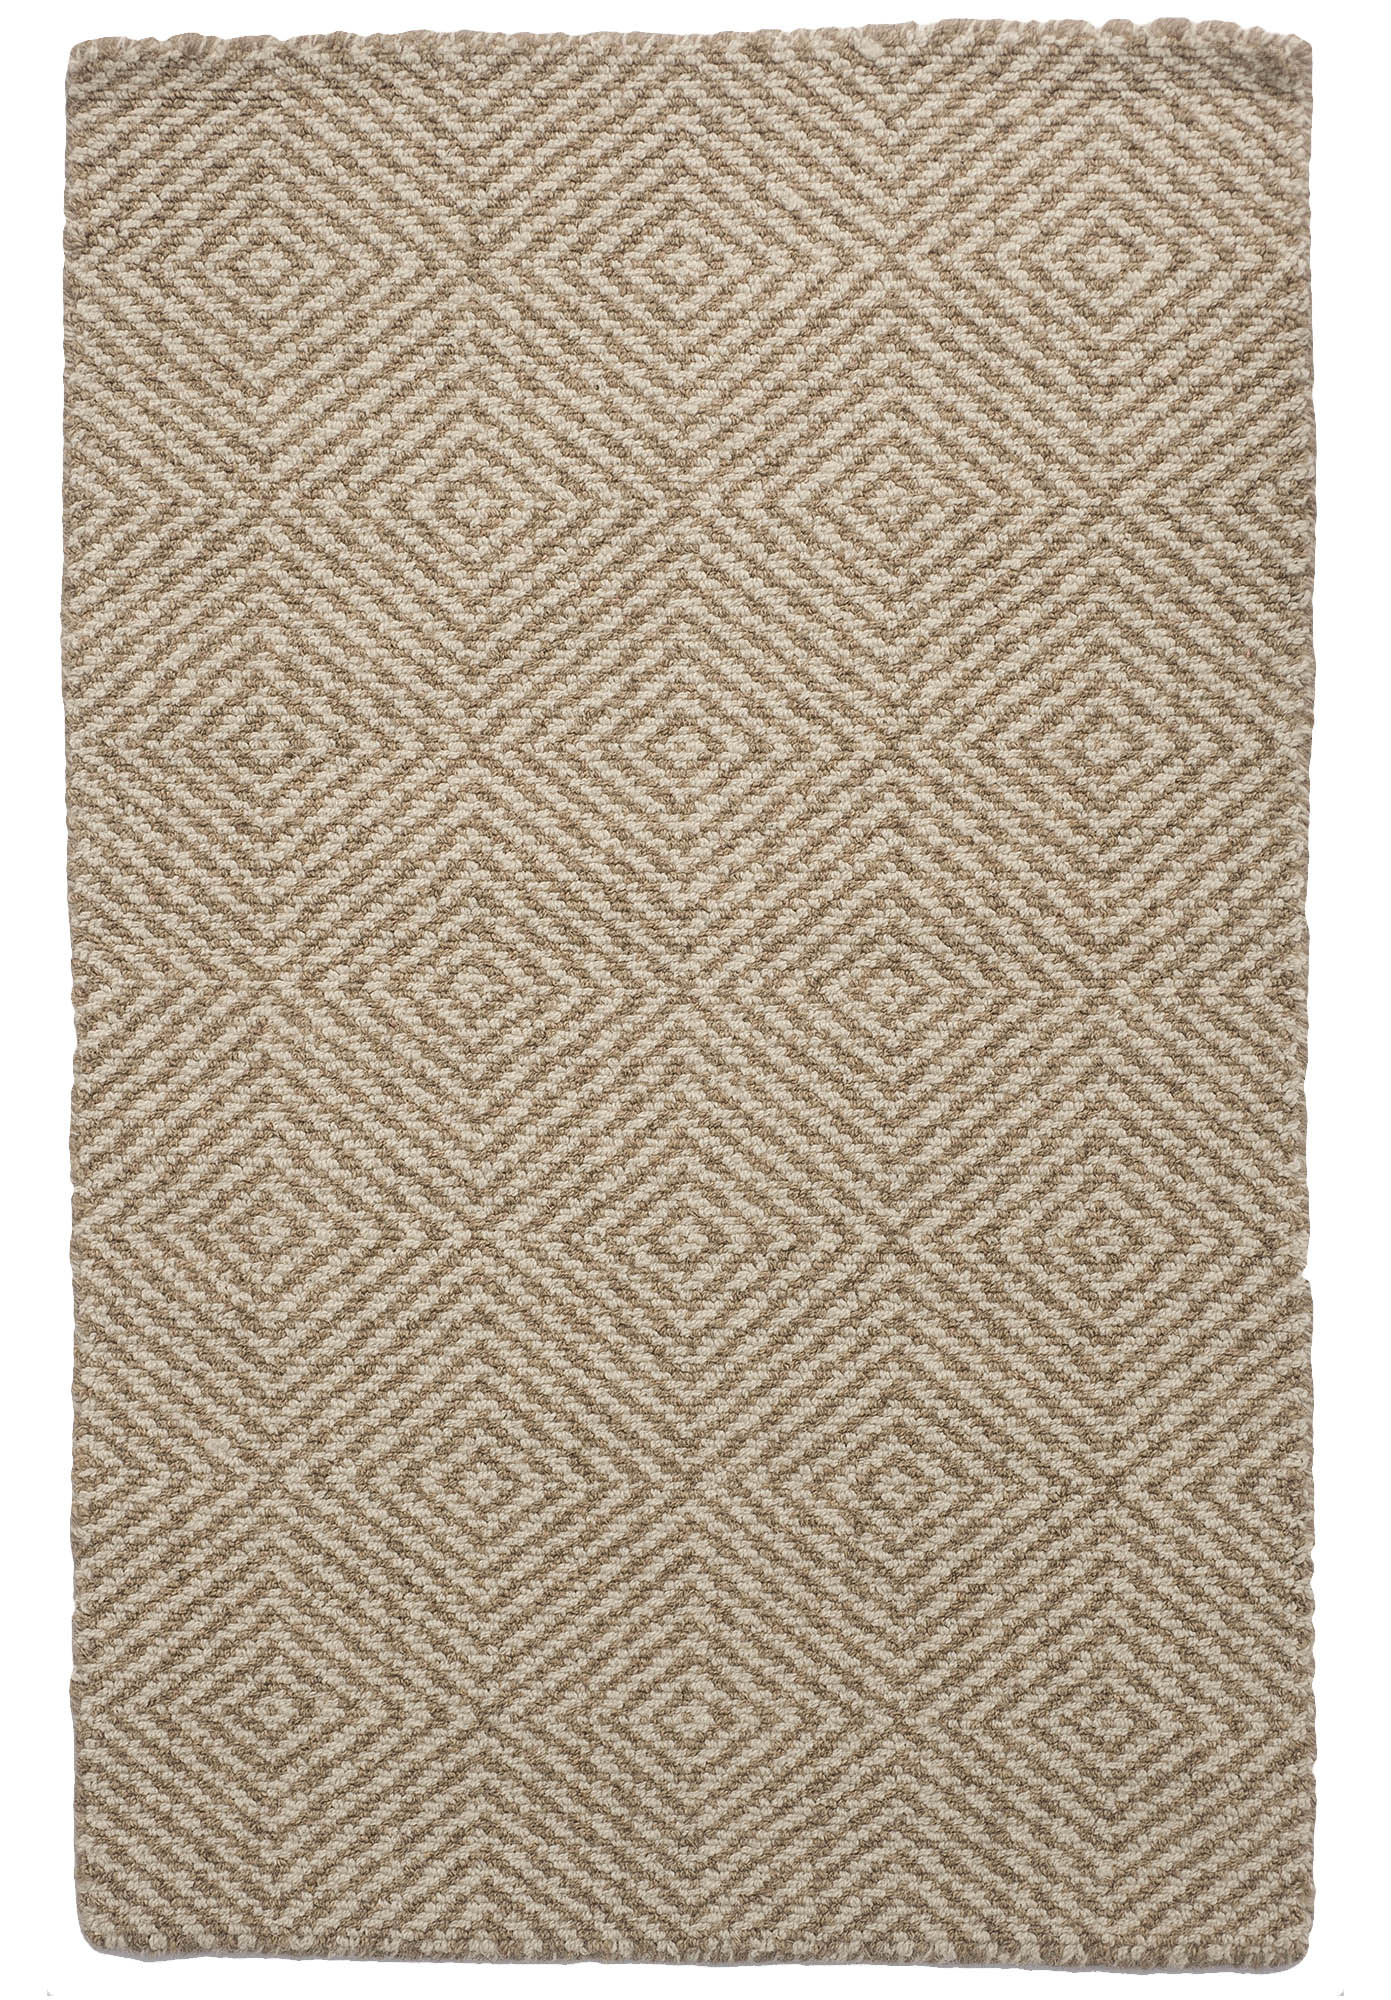 Kensington Wool Taupe Natural Loom Hooked Rug